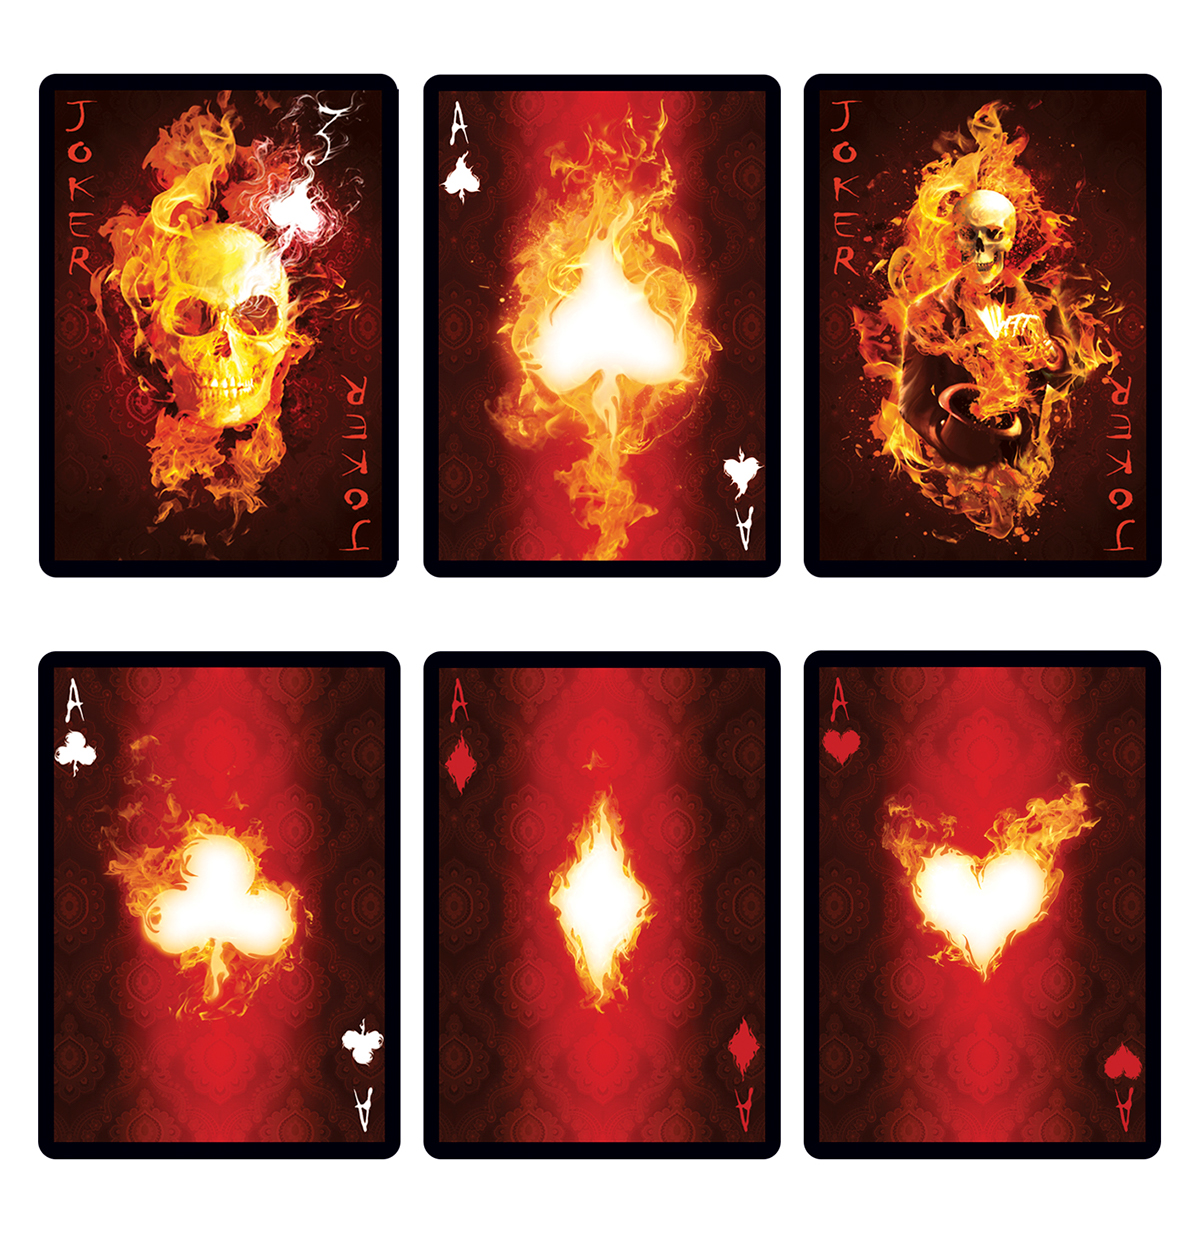 Magic Trick Store magician Playing Cards fire pyromaniac Bicycle digital illustration